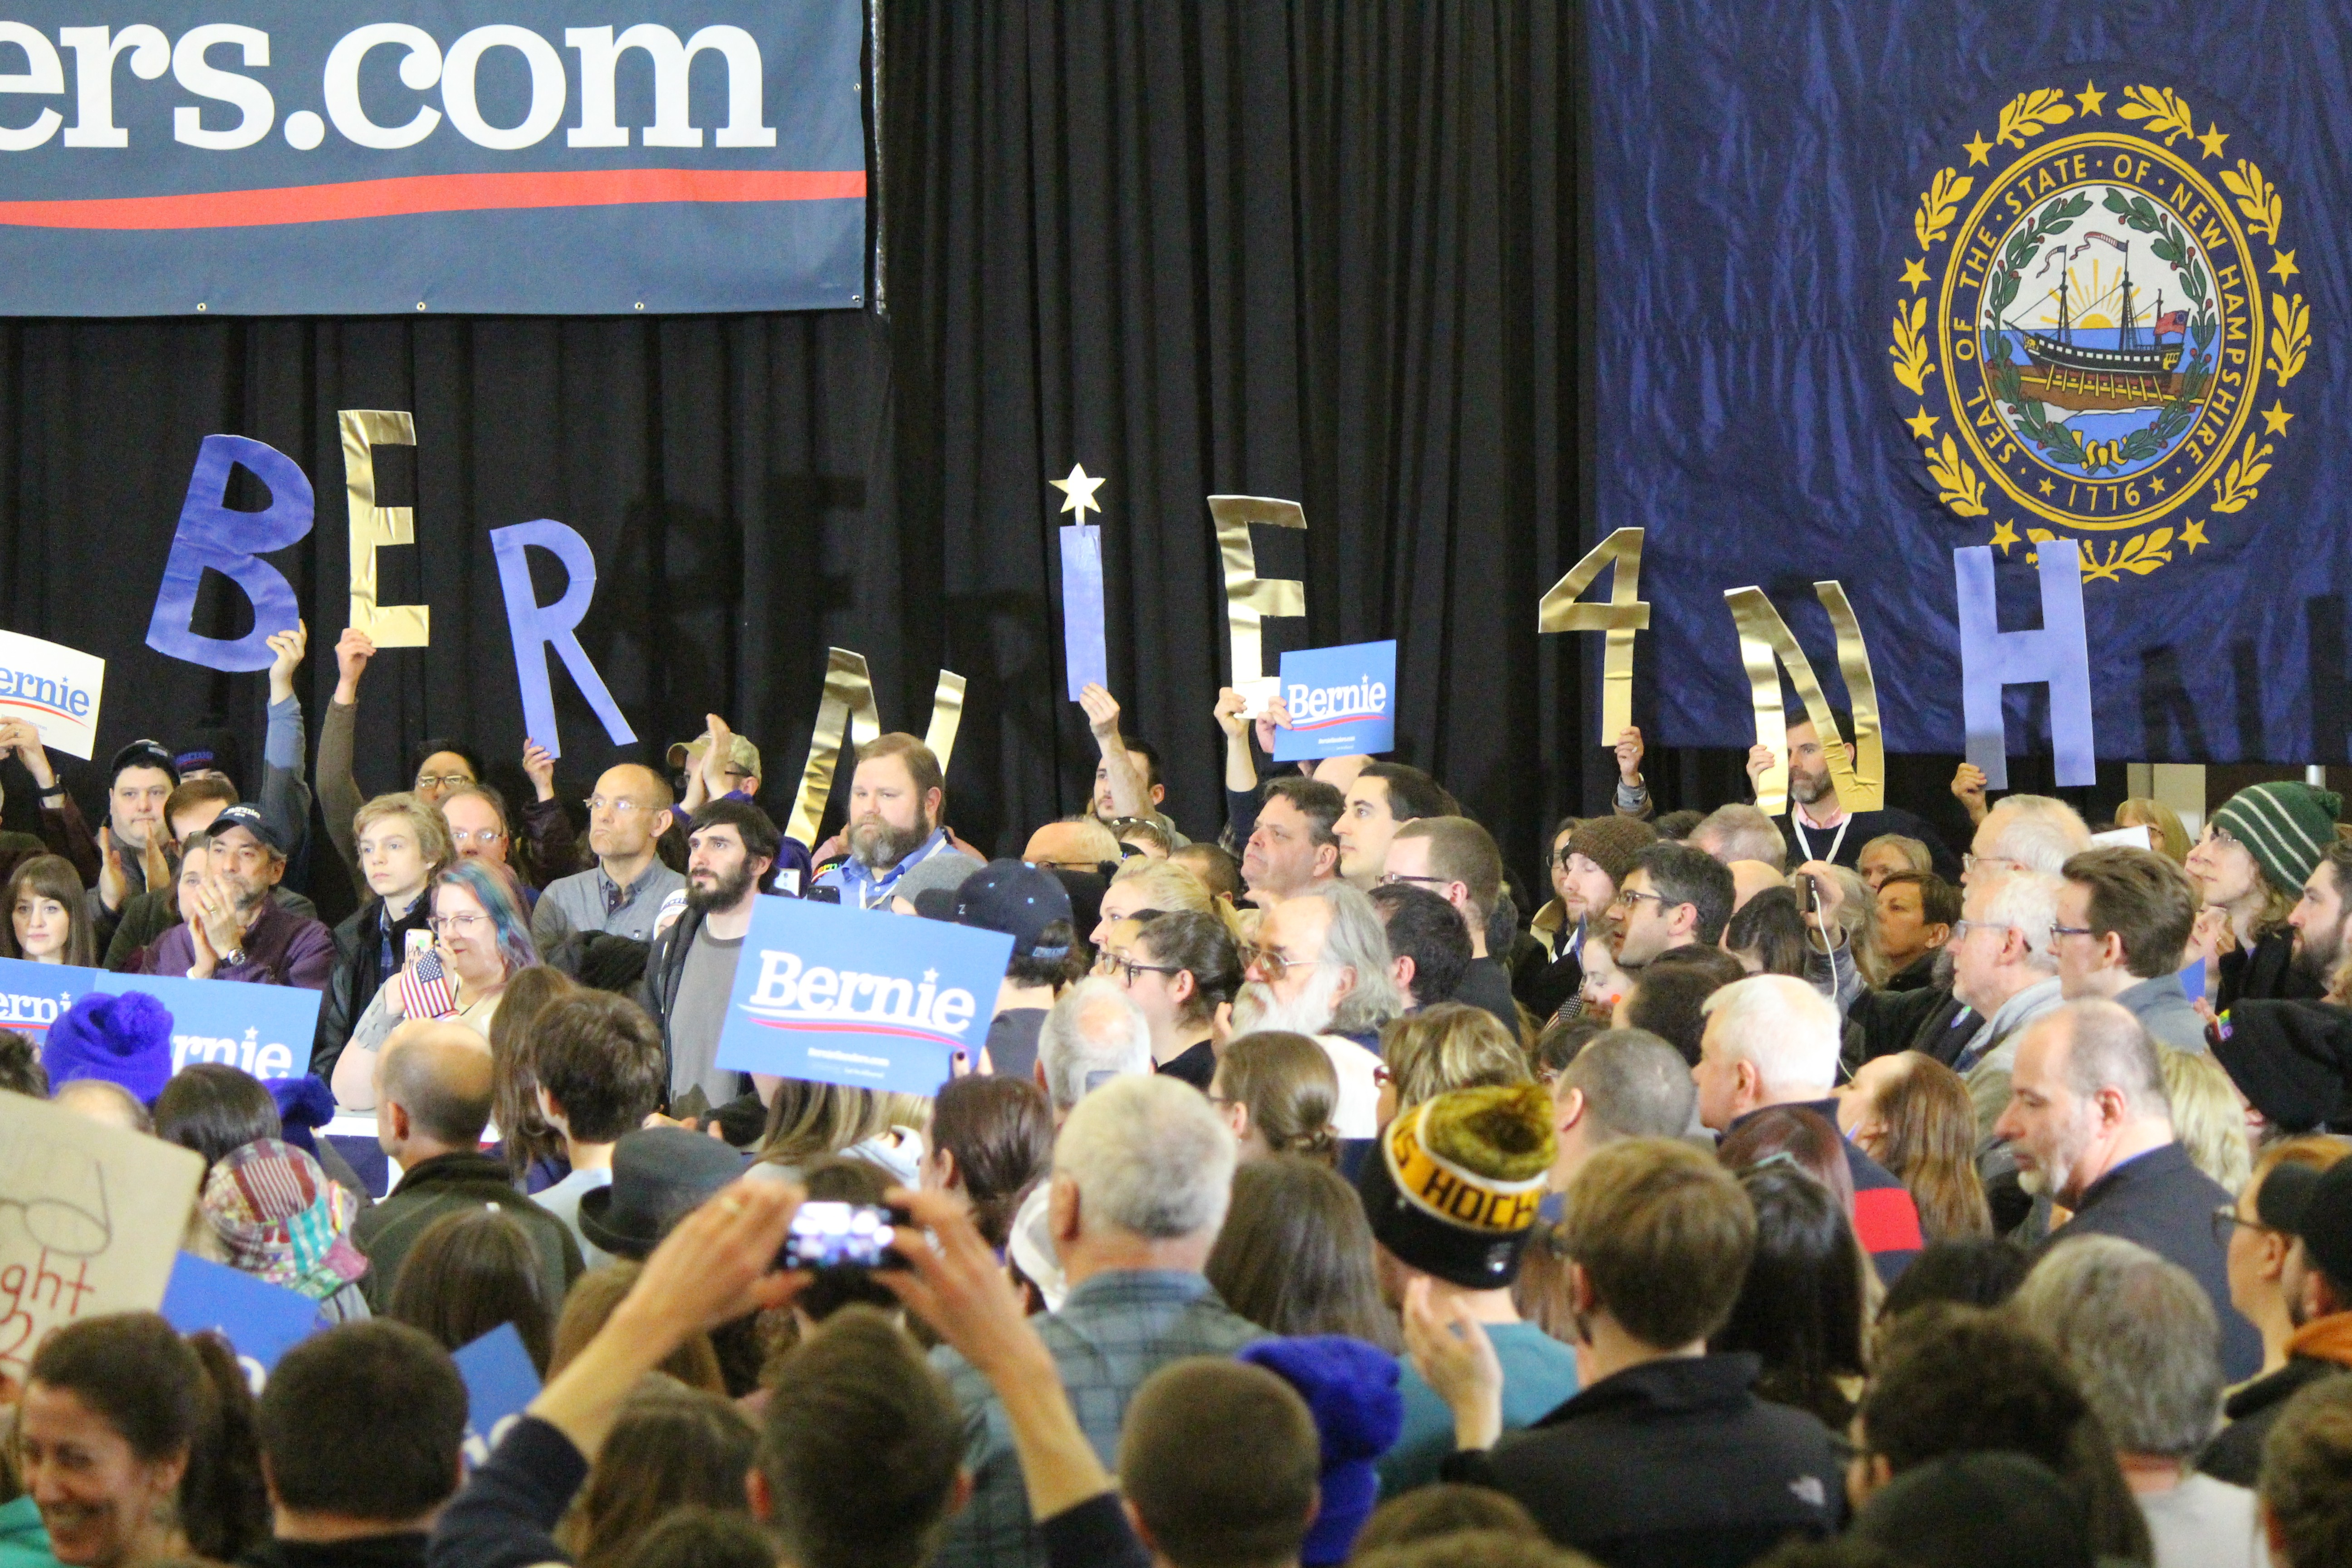 click to enlarge Bernie Sanders supporters at a rally in Concord, N.H. -  PAUL HEINTZ